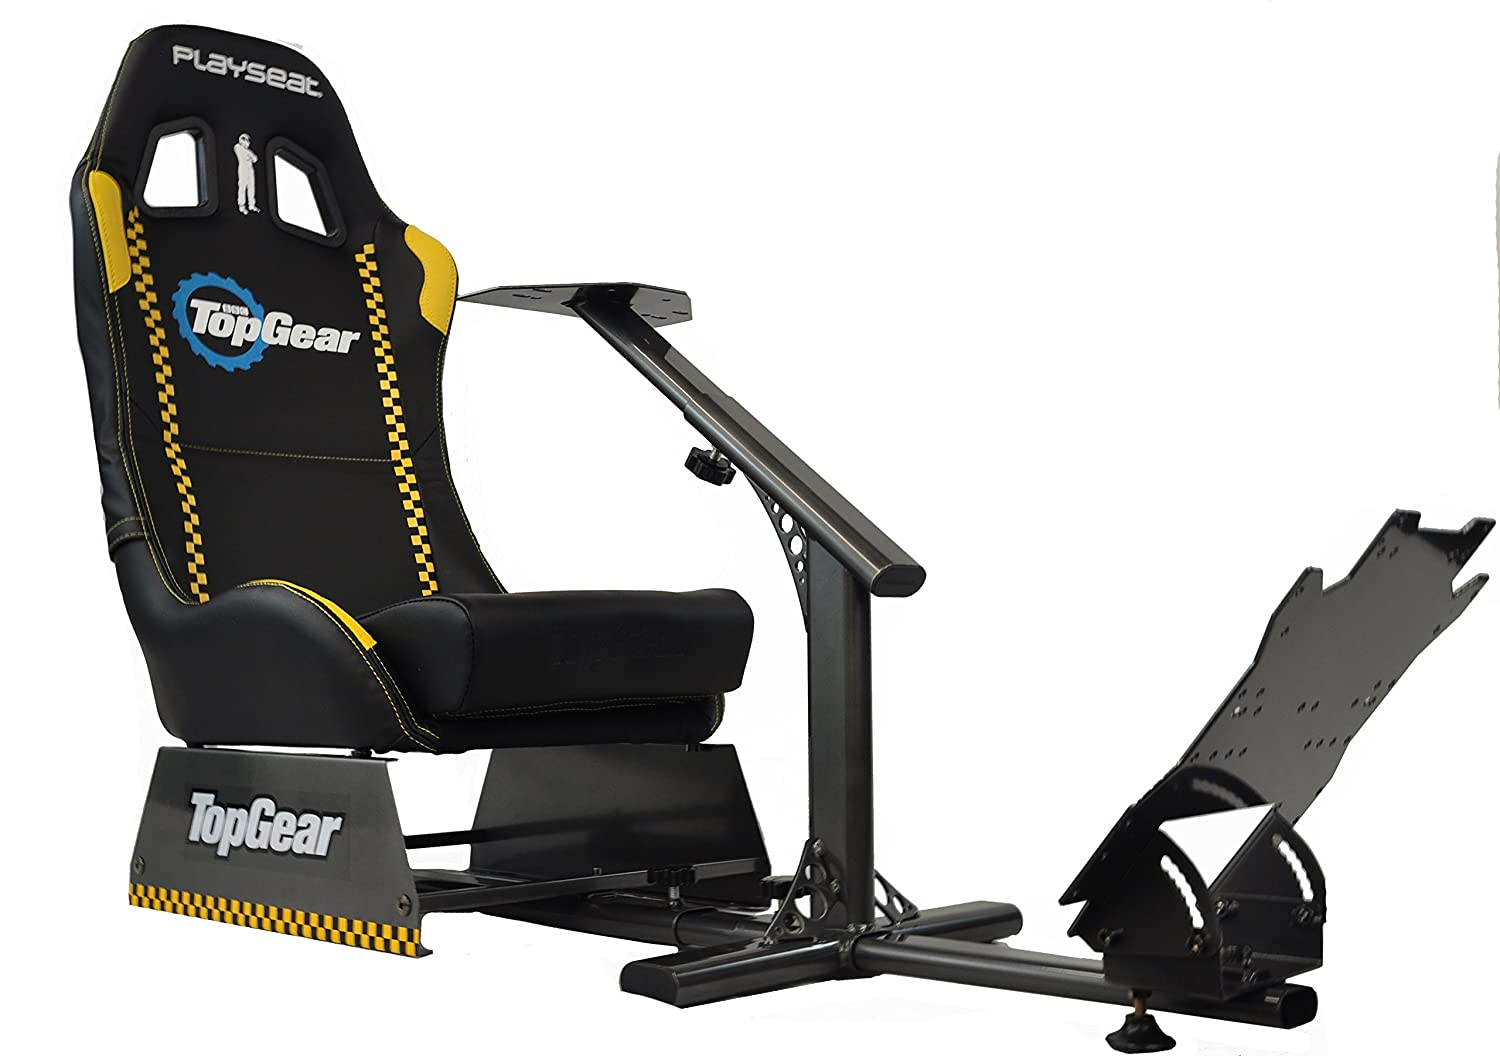 info on the playseat evolution top gear edition racing. Black Bedroom Furniture Sets. Home Design Ideas